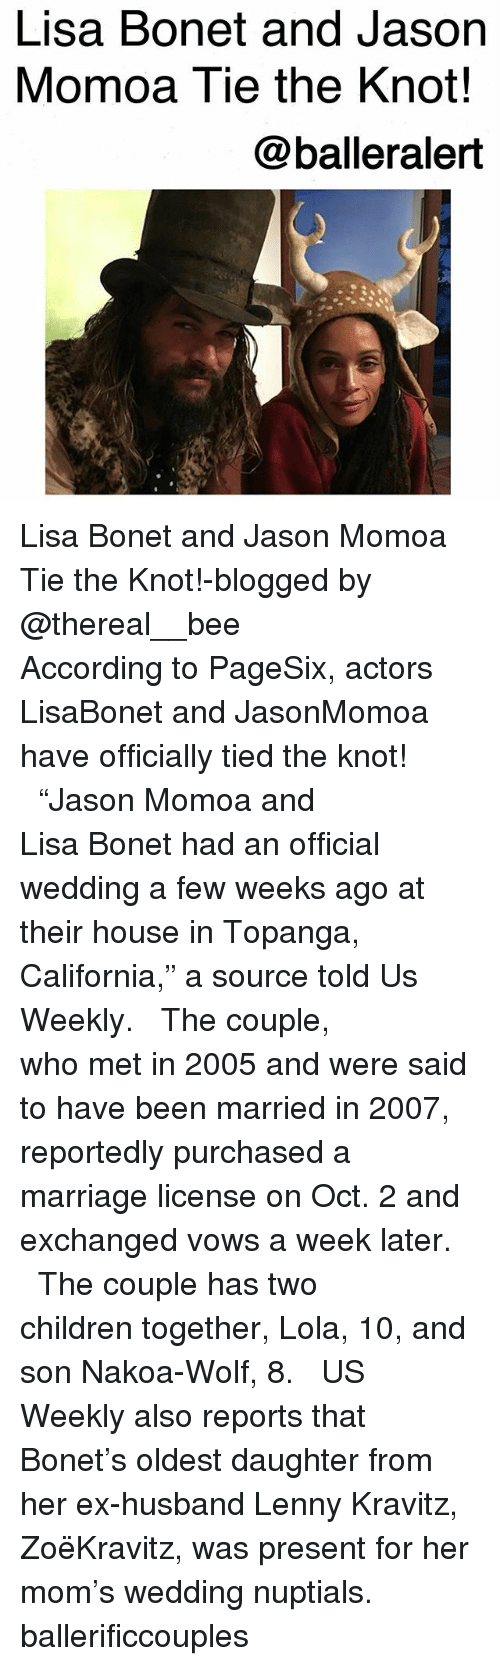 "the knot: Lisa Bonet and Jason  Momoa Tie the Knot!  @balleralert Lisa Bonet and Jason Momoa Tie the Knot!-blogged by @thereal__bee ⠀⠀⠀⠀⠀⠀⠀⠀⠀ ⠀⠀ According to PageSix, actors LisaBonet and JasonMomoa have officially tied the knot! ⠀⠀⠀⠀⠀⠀⠀⠀⠀ ⠀⠀ ""Jason Momoa and Lisa Bonet had an official wedding a few weeks ago at their house in Topanga, California,"" a source told Us Weekly. ⠀⠀⠀⠀⠀⠀⠀⠀⠀ ⠀⠀ The couple, who met in 2005 and were said to have been married in 2007, reportedly purchased a marriage license on Oct. 2 and exchanged vows a week later. ⠀⠀⠀⠀⠀⠀⠀⠀⠀ ⠀⠀ The couple has two children together, Lola, 10, and son Nakoa-Wolf, 8. ⠀⠀⠀⠀⠀⠀⠀⠀⠀ ⠀⠀ US Weekly also reports that Bonet's oldest daughter from her ex-husband Lenny Kravitz, ZoëKravitz, was present for her mom's wedding nuptials. ballerificcouples"